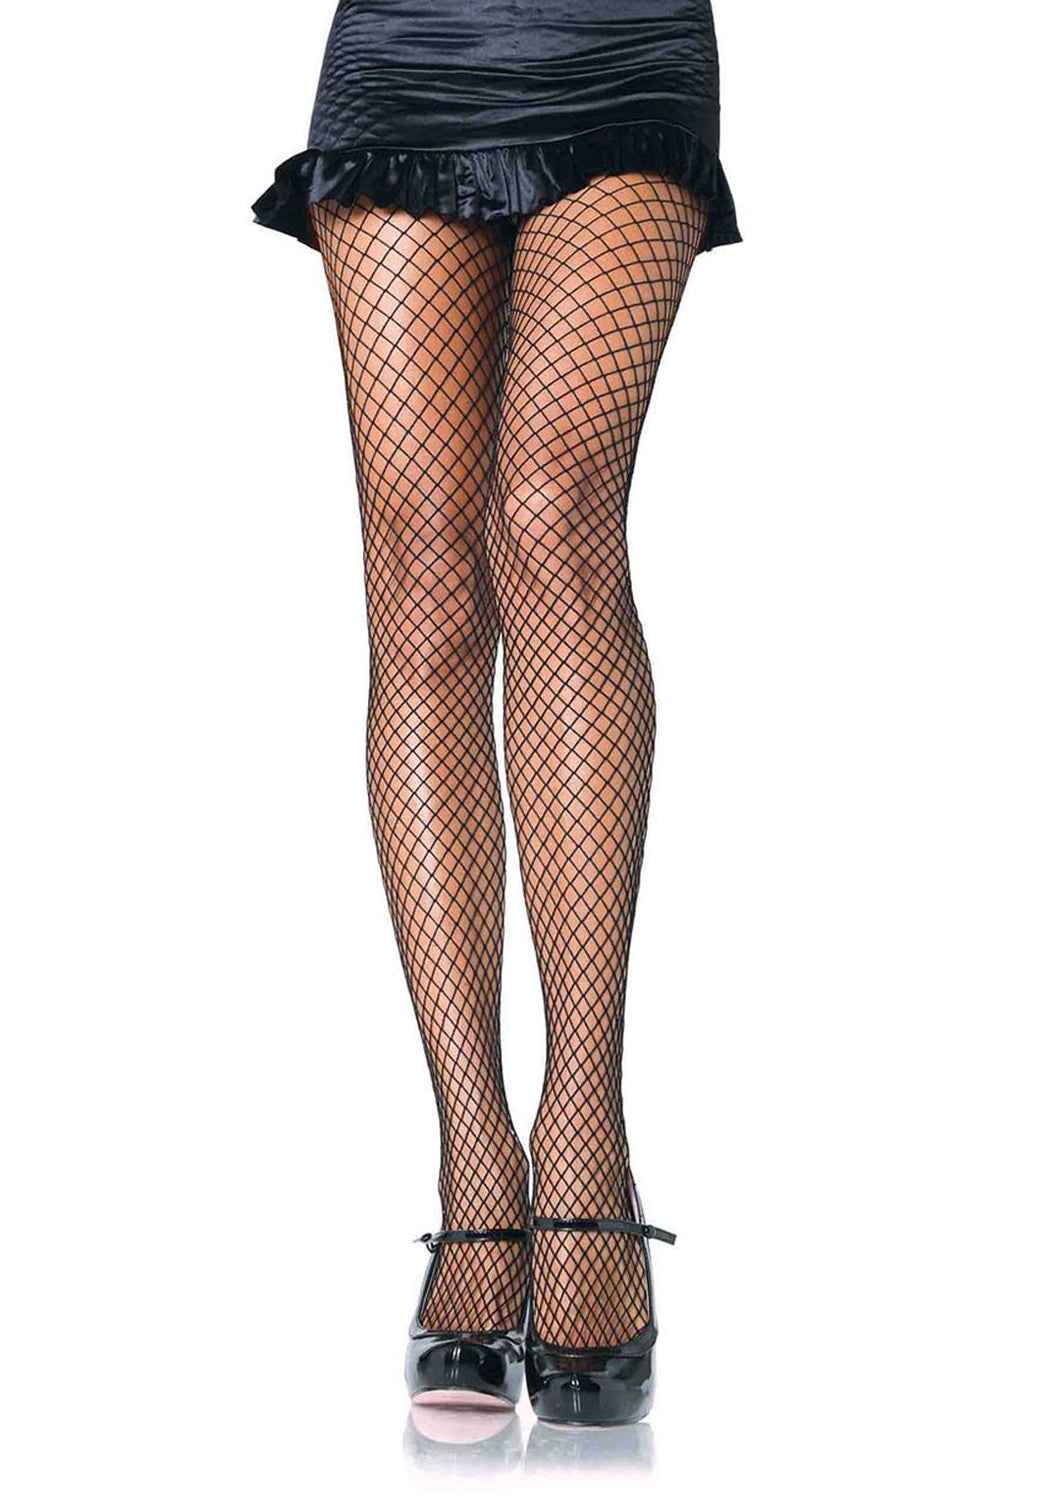 Black or Nude Spandex Industrial Net Tights